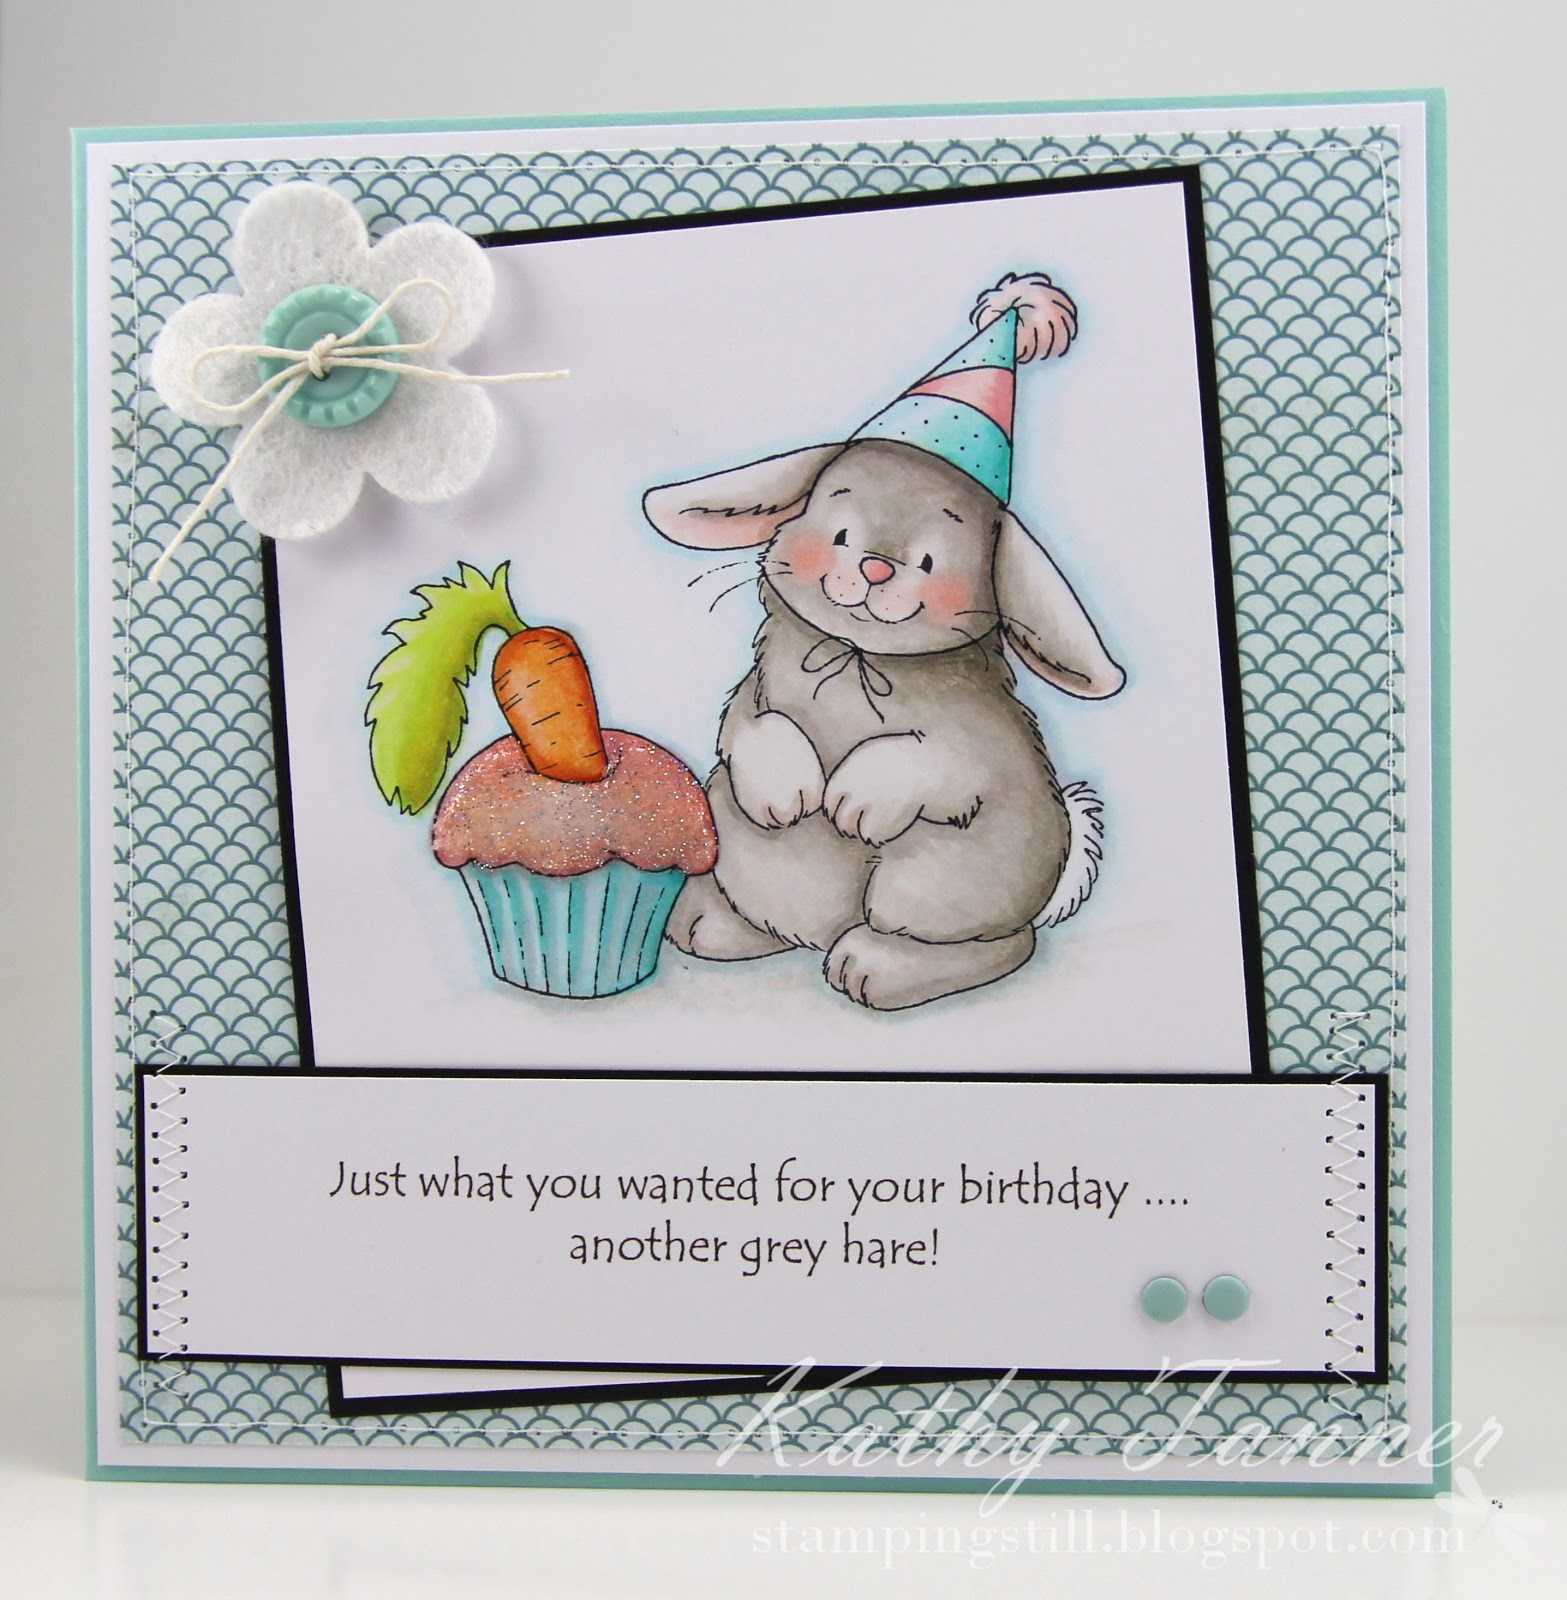 Bunny's Birthday, Whimsy, Crissy Armstrong, Hare